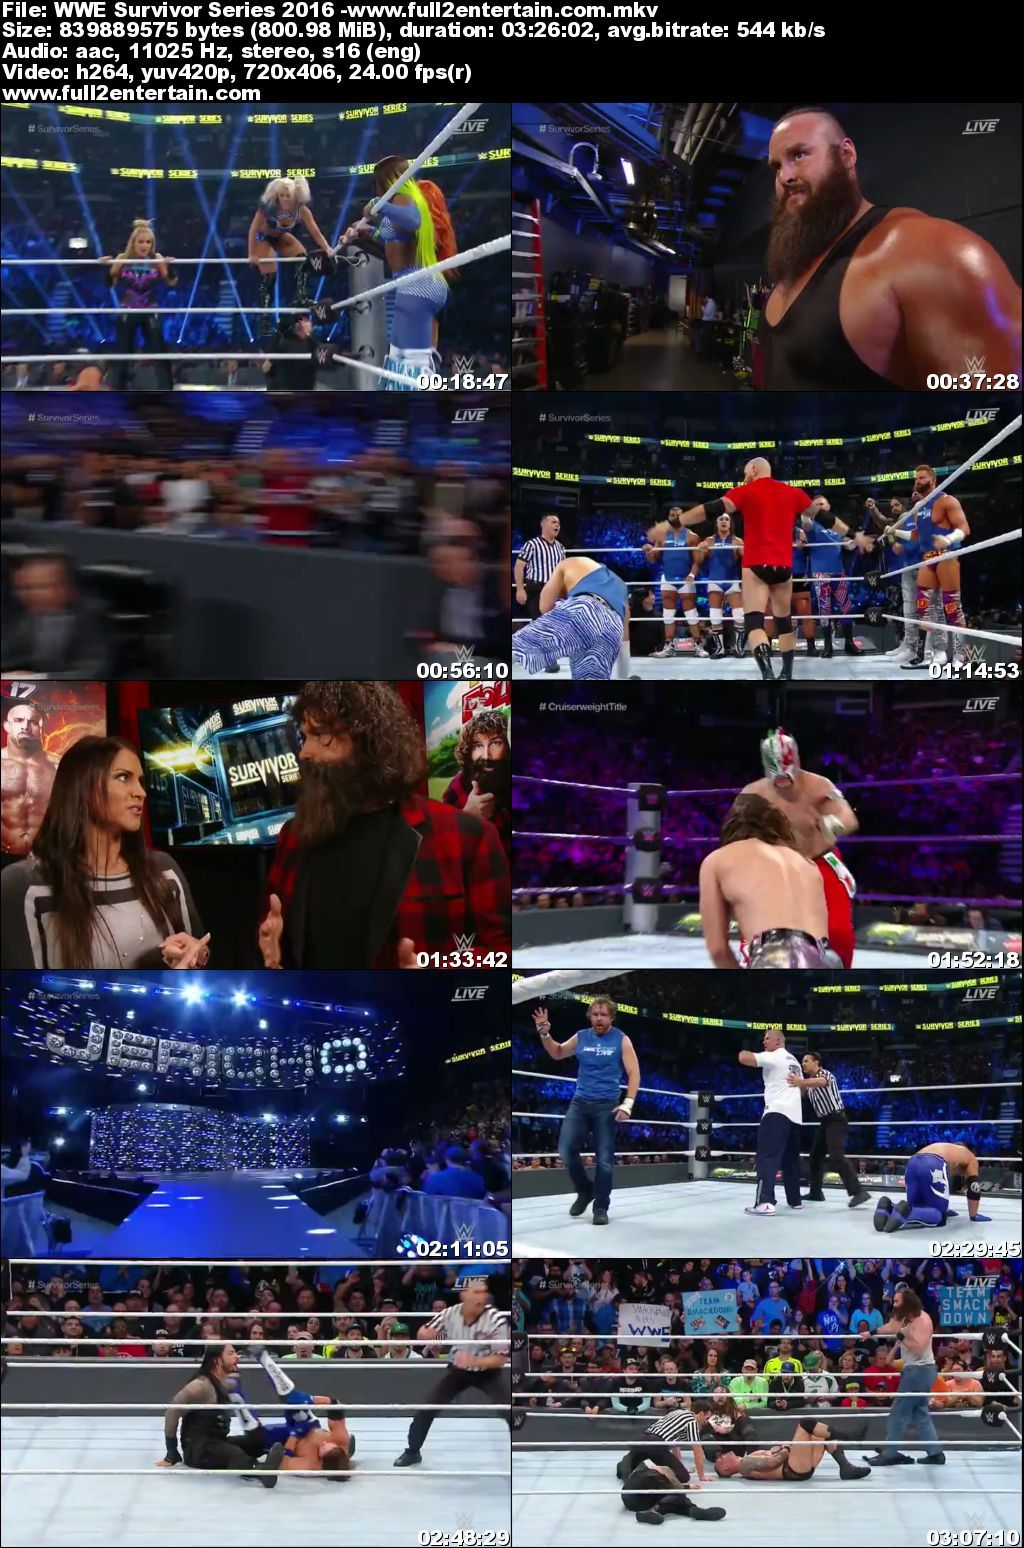 Wwe Survivor Series 2016 Download 720p Bluray